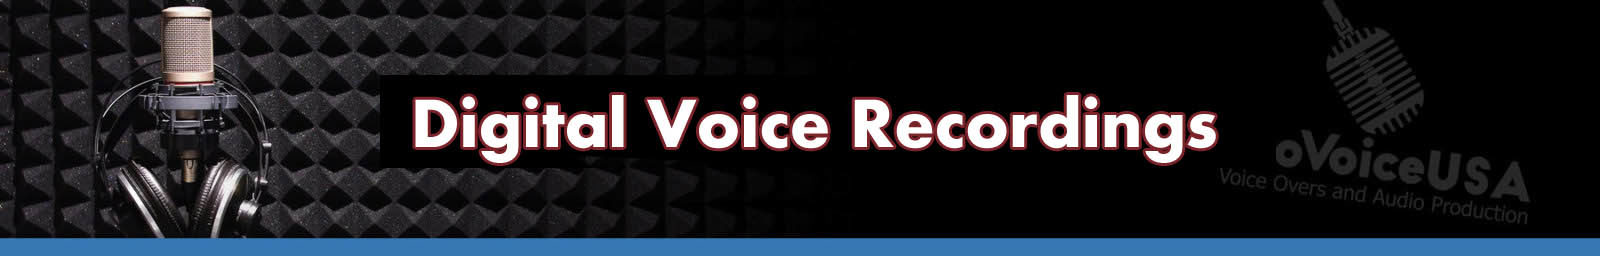 Digital Voice Recording Header